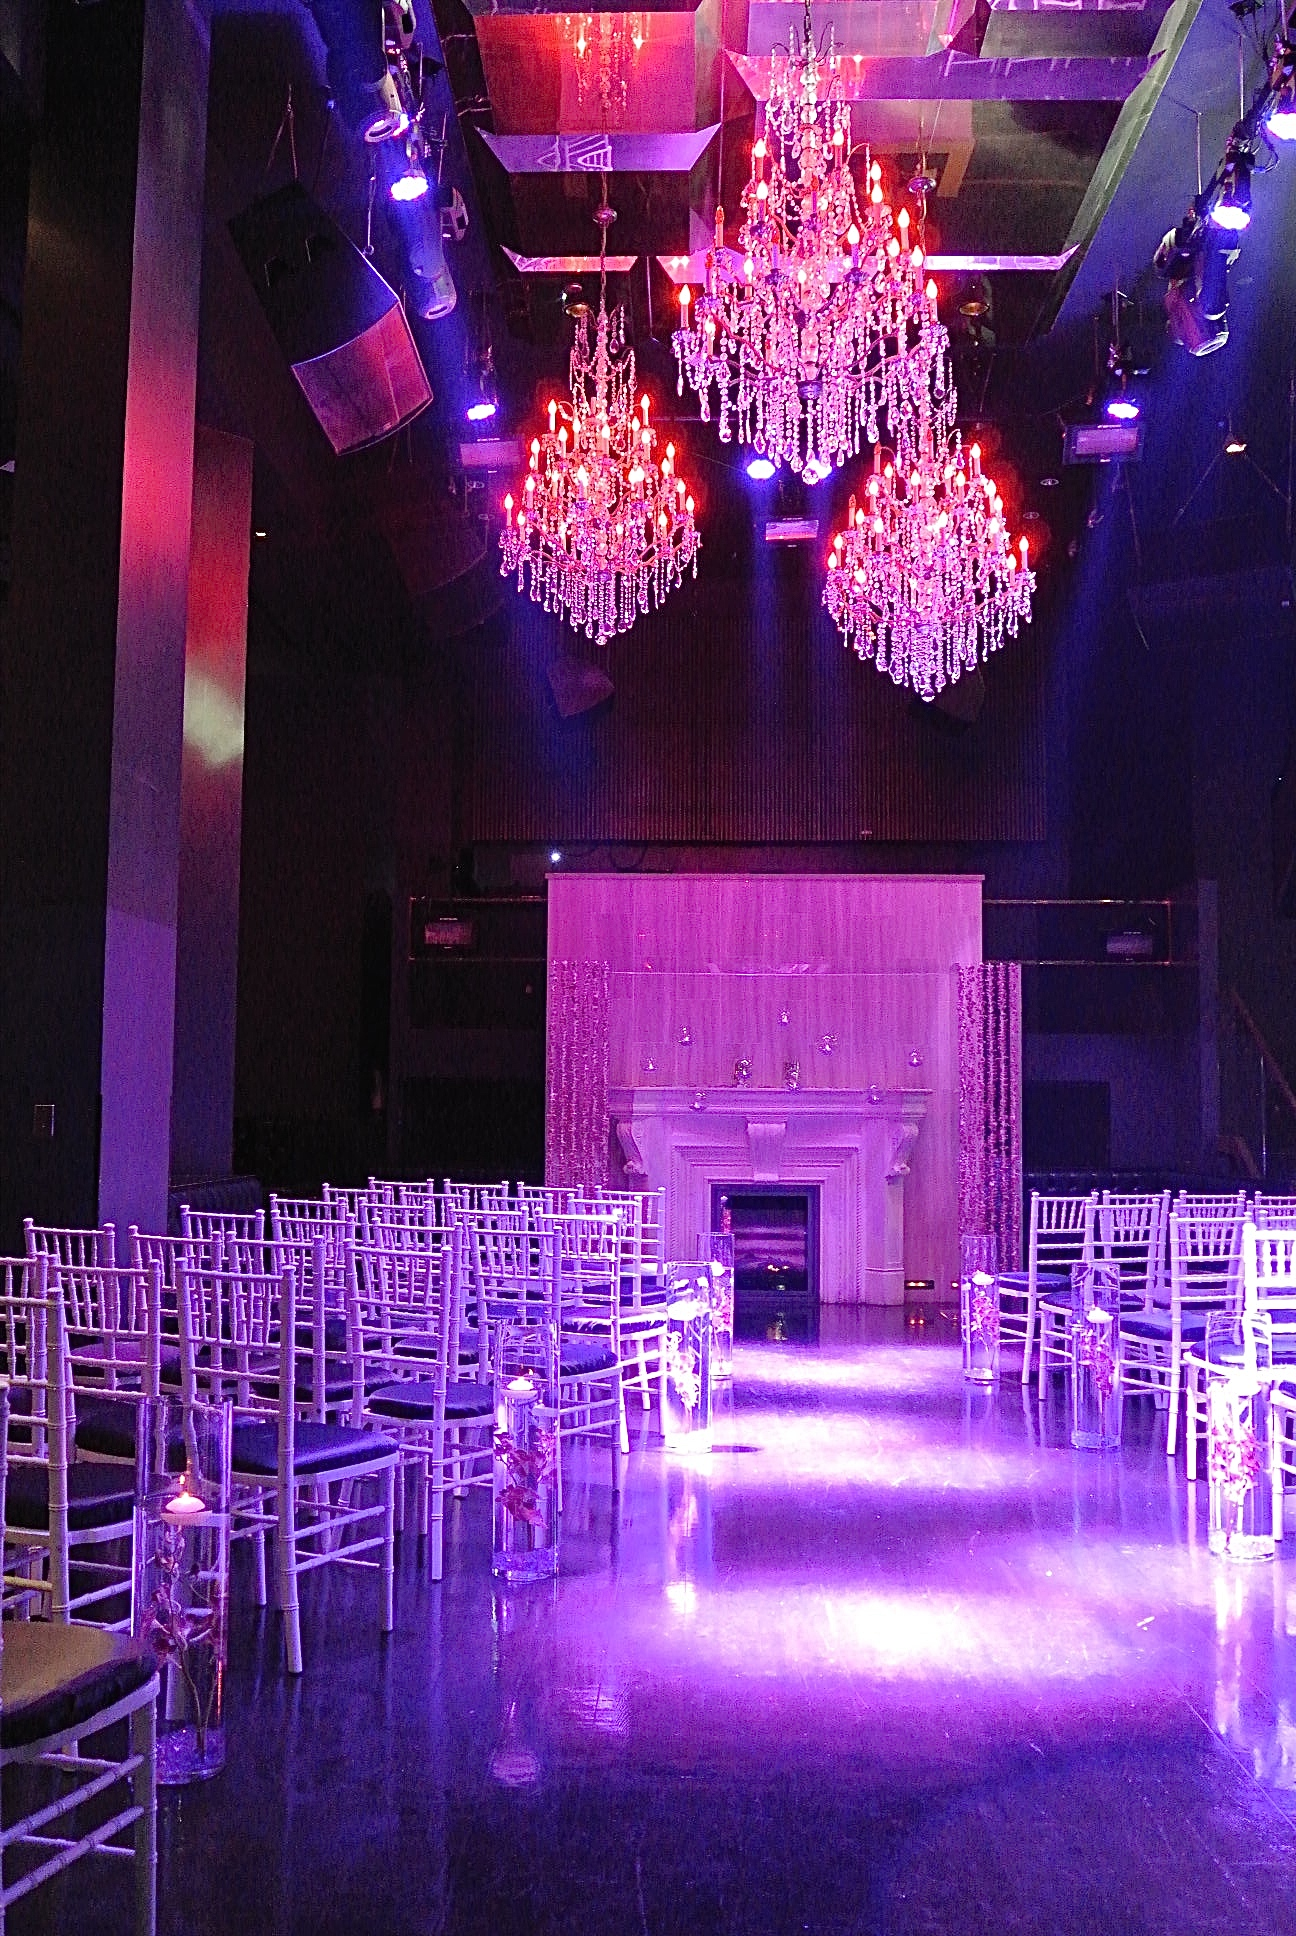 Shades of purple, pink, and red were brightened with white light for the wedding at Chateau Nightclub.Photo by Las Vegas Wedding Planner Andrea Eppolito.